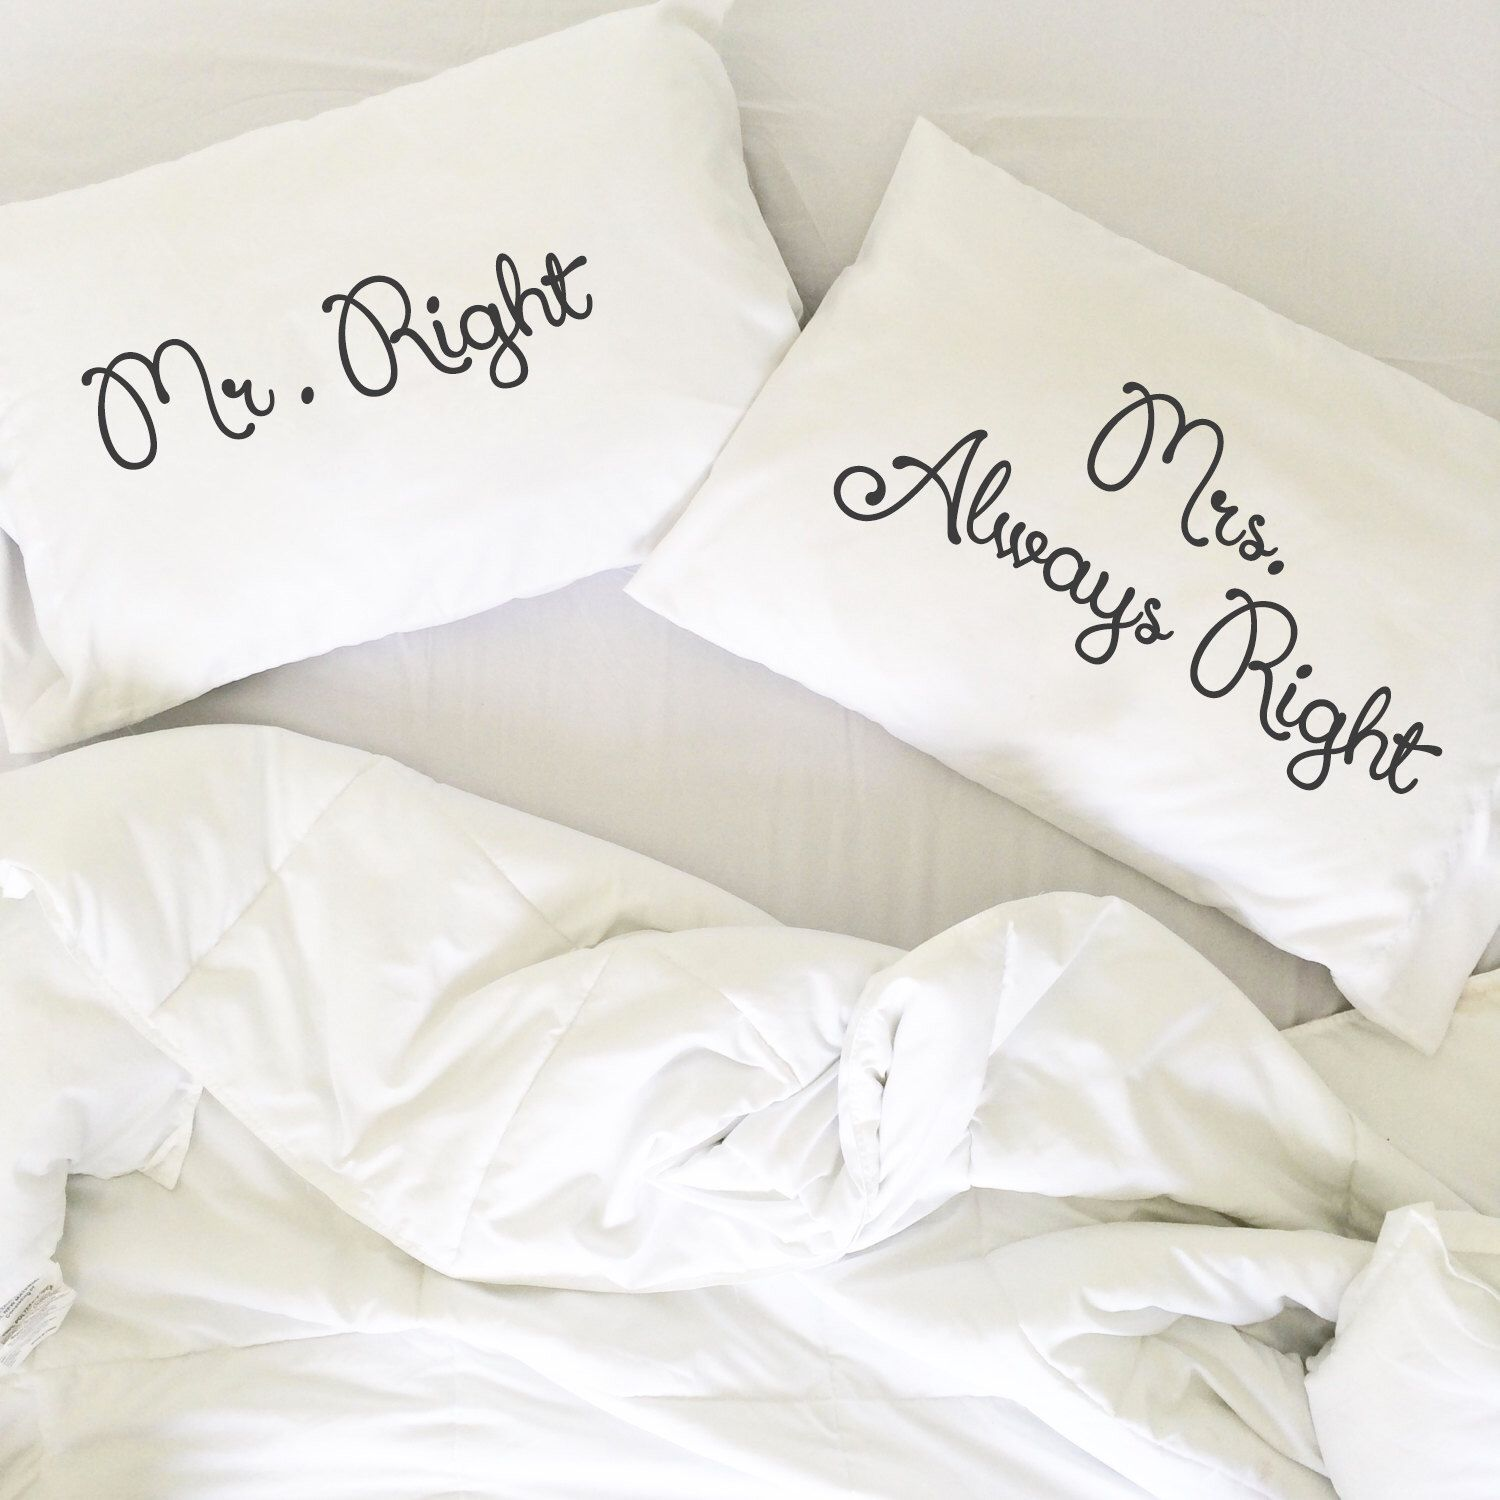 hers com i pillowcases count cases for and the covers beast link pillow beauty his amazon thread